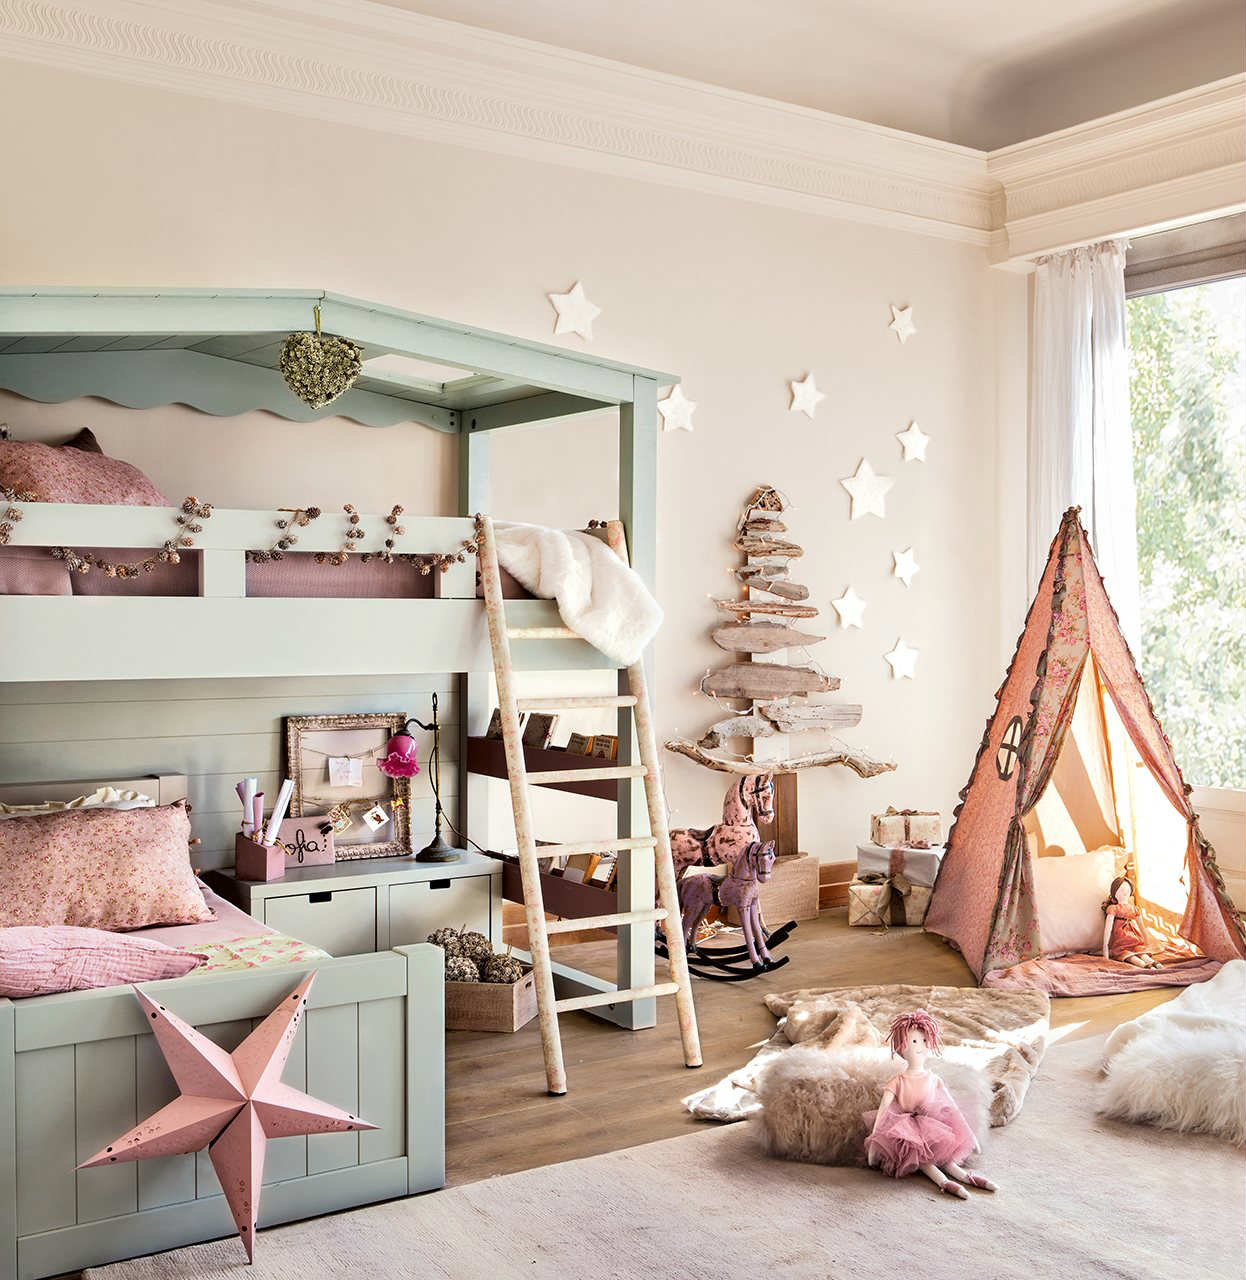 Elegant Light Creame Painted Wall Pastel Painted Bed Wooden Floor Cute Small Tent  Adorable Decorations Rustic Ladder